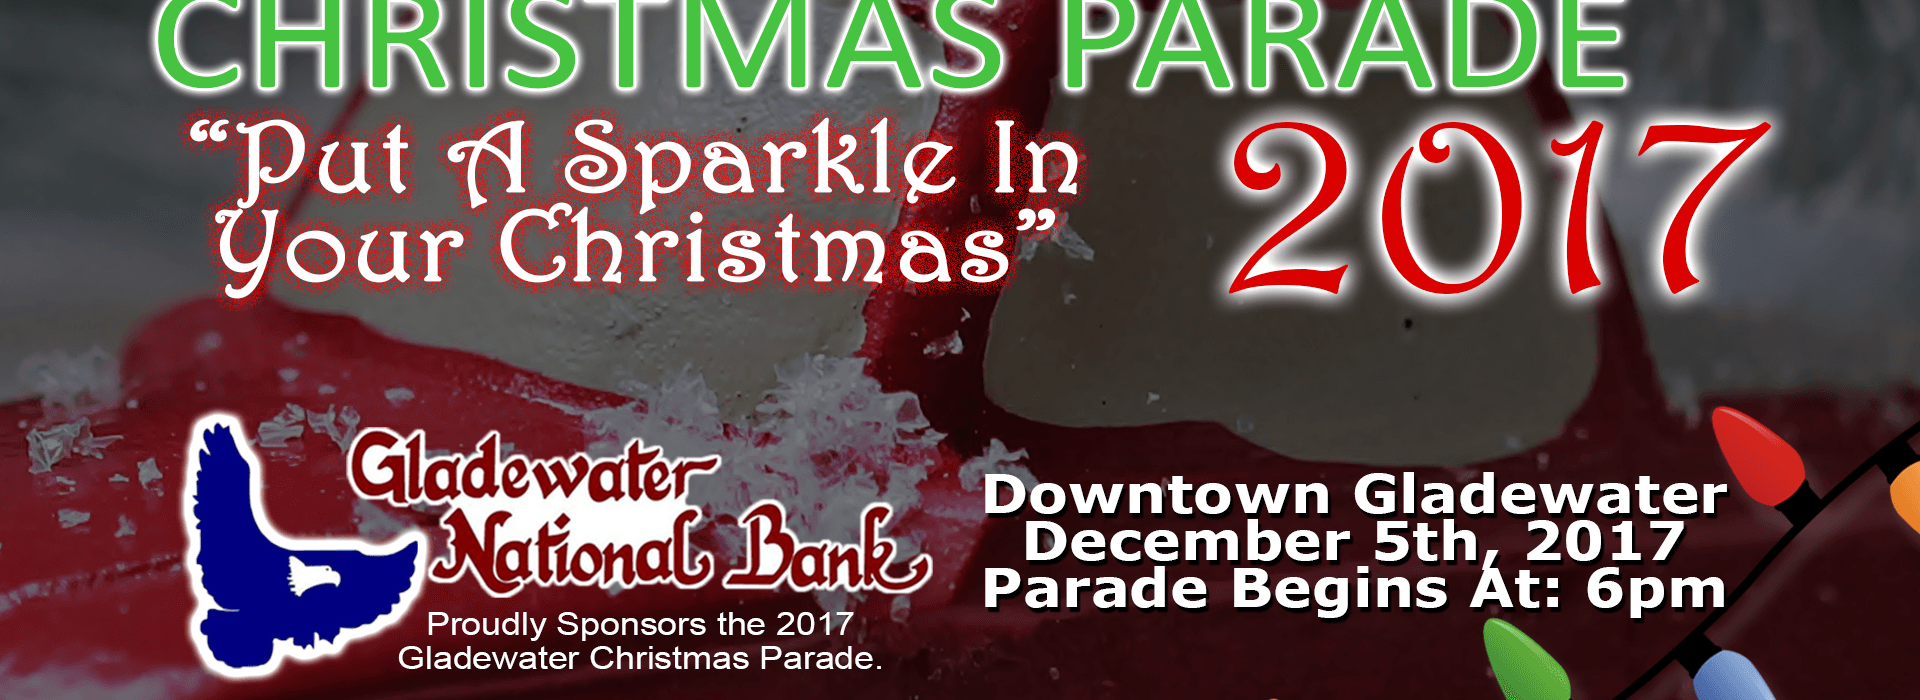 """2017 Gladewater Chamber of Commerce Annual Christmas Parade. This years theme is """"Put a Sparkle in your Christmas"""". Our sponsor again this year is: Gladewater National Bank."""